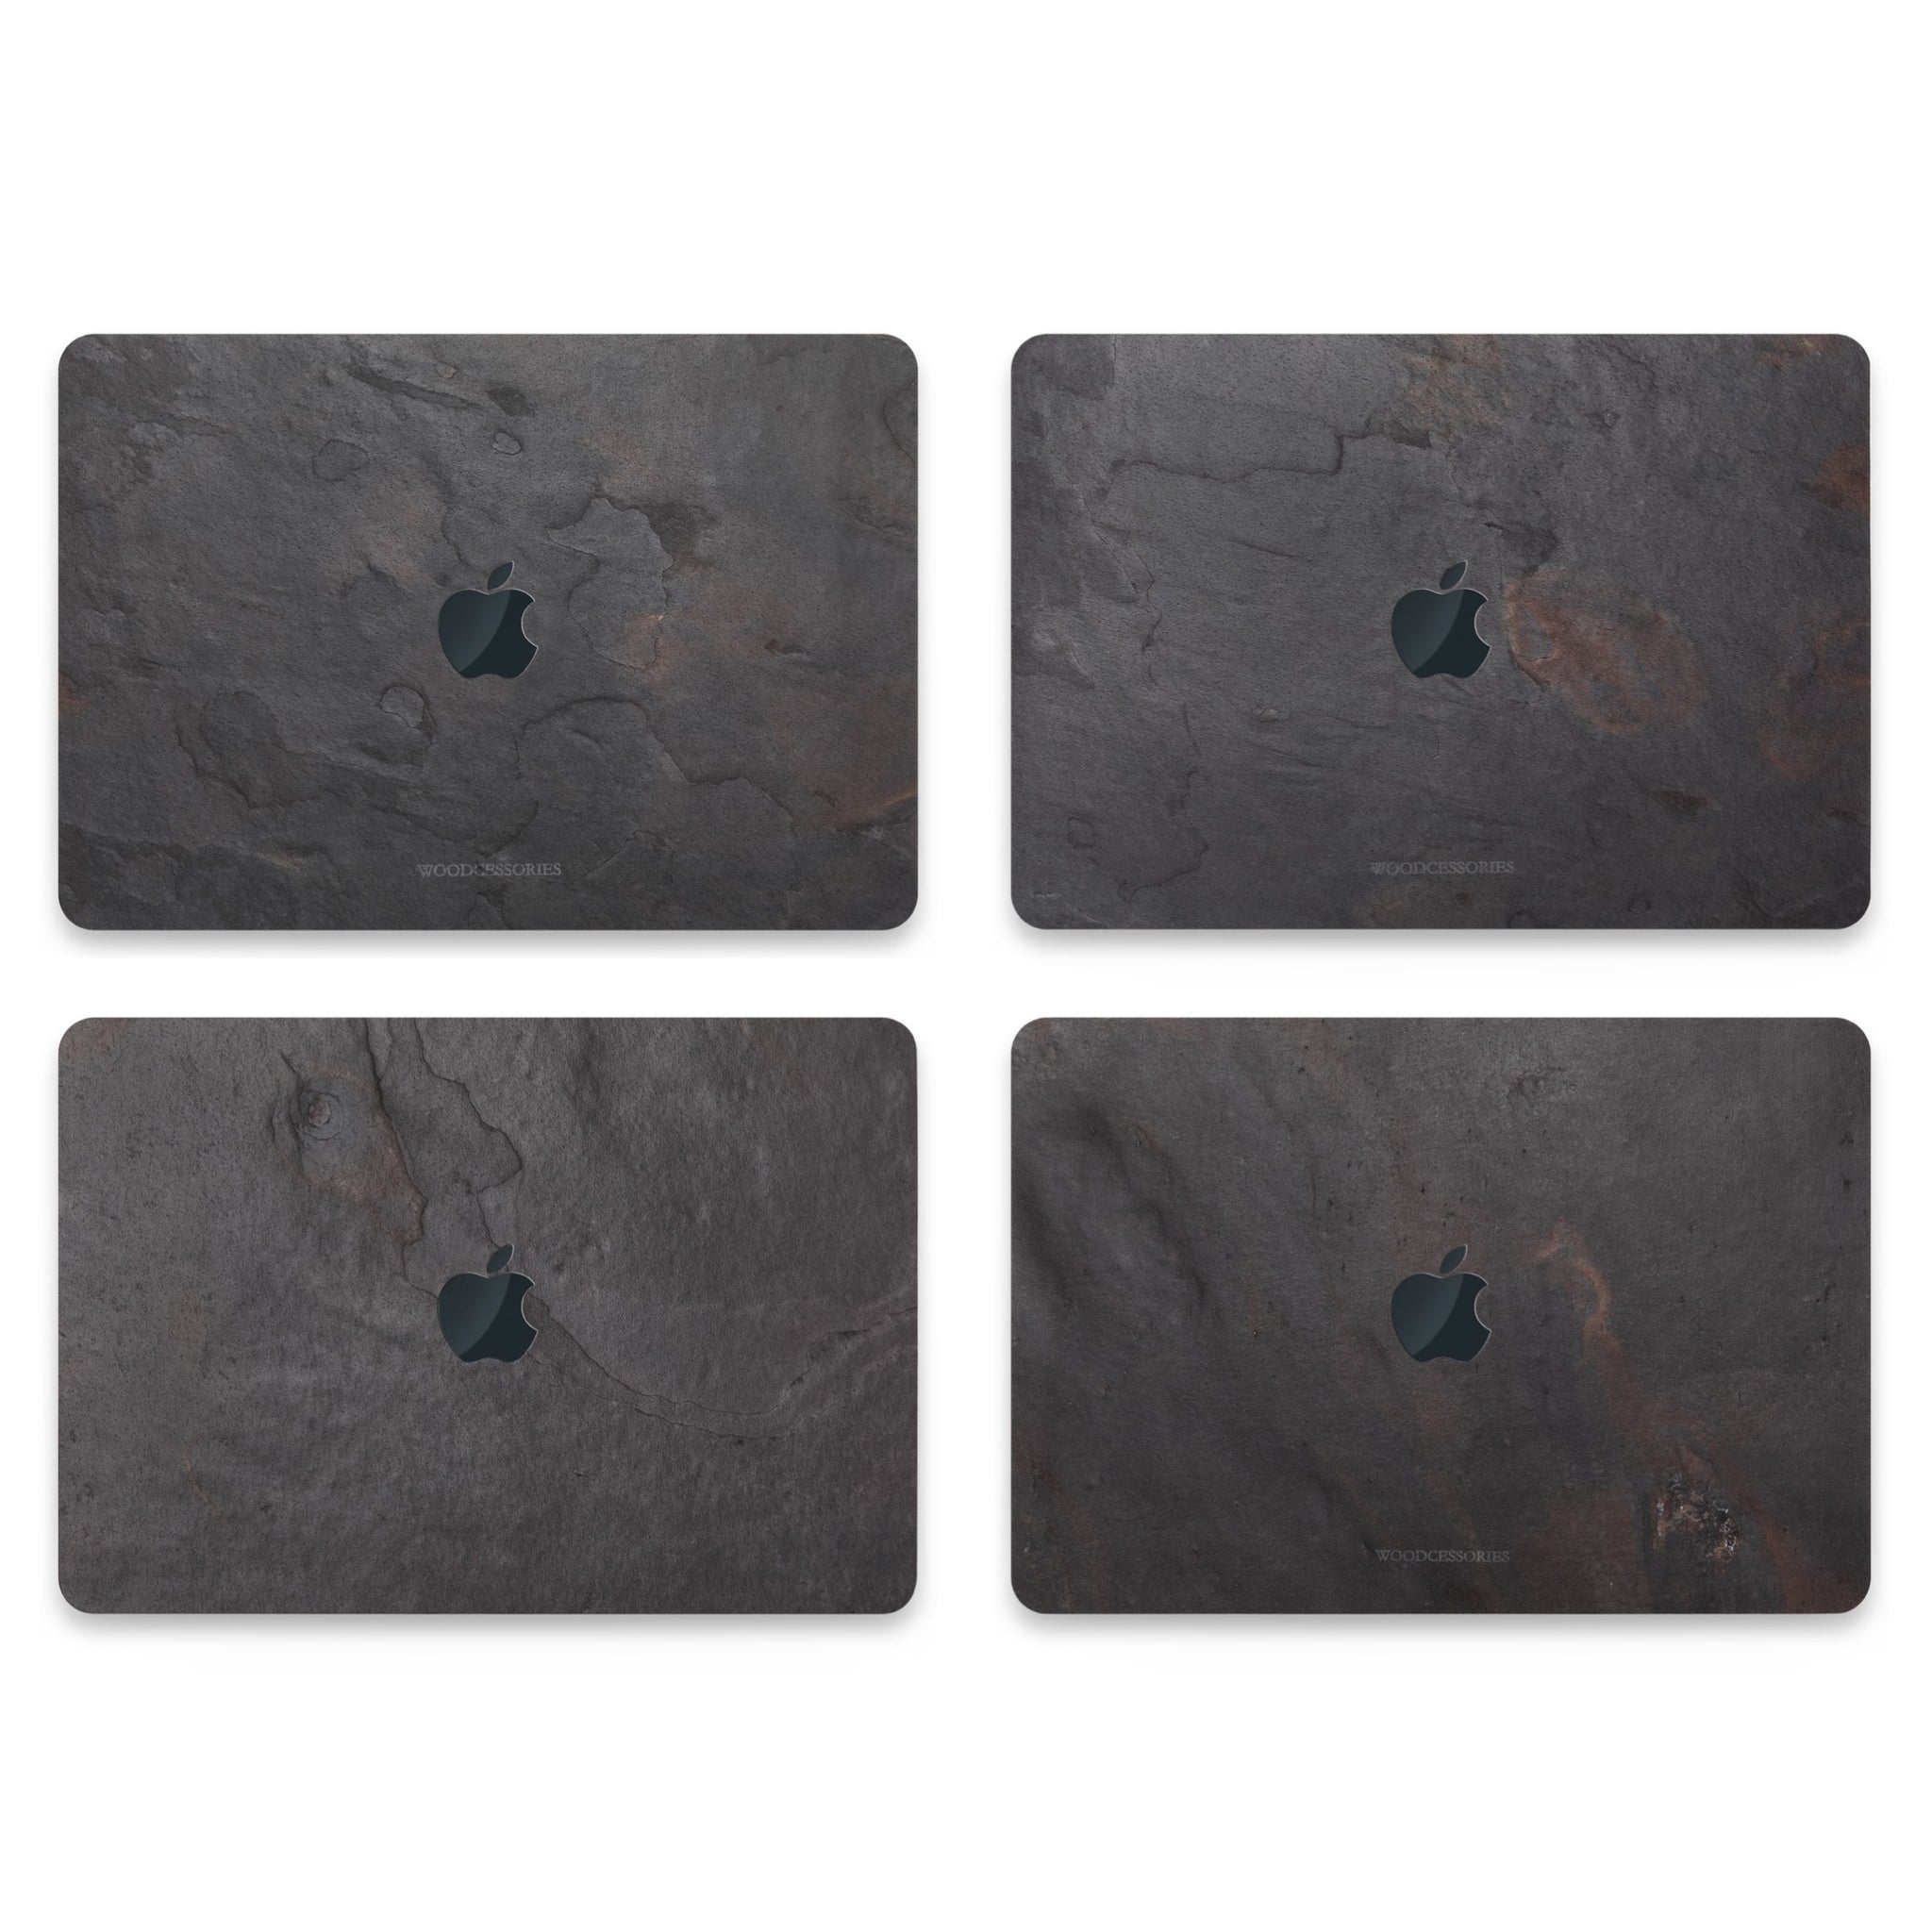 "Woodcessories EcoSkin Stone Cover for 13""  MacBook Pro and Air - Volcano Black"